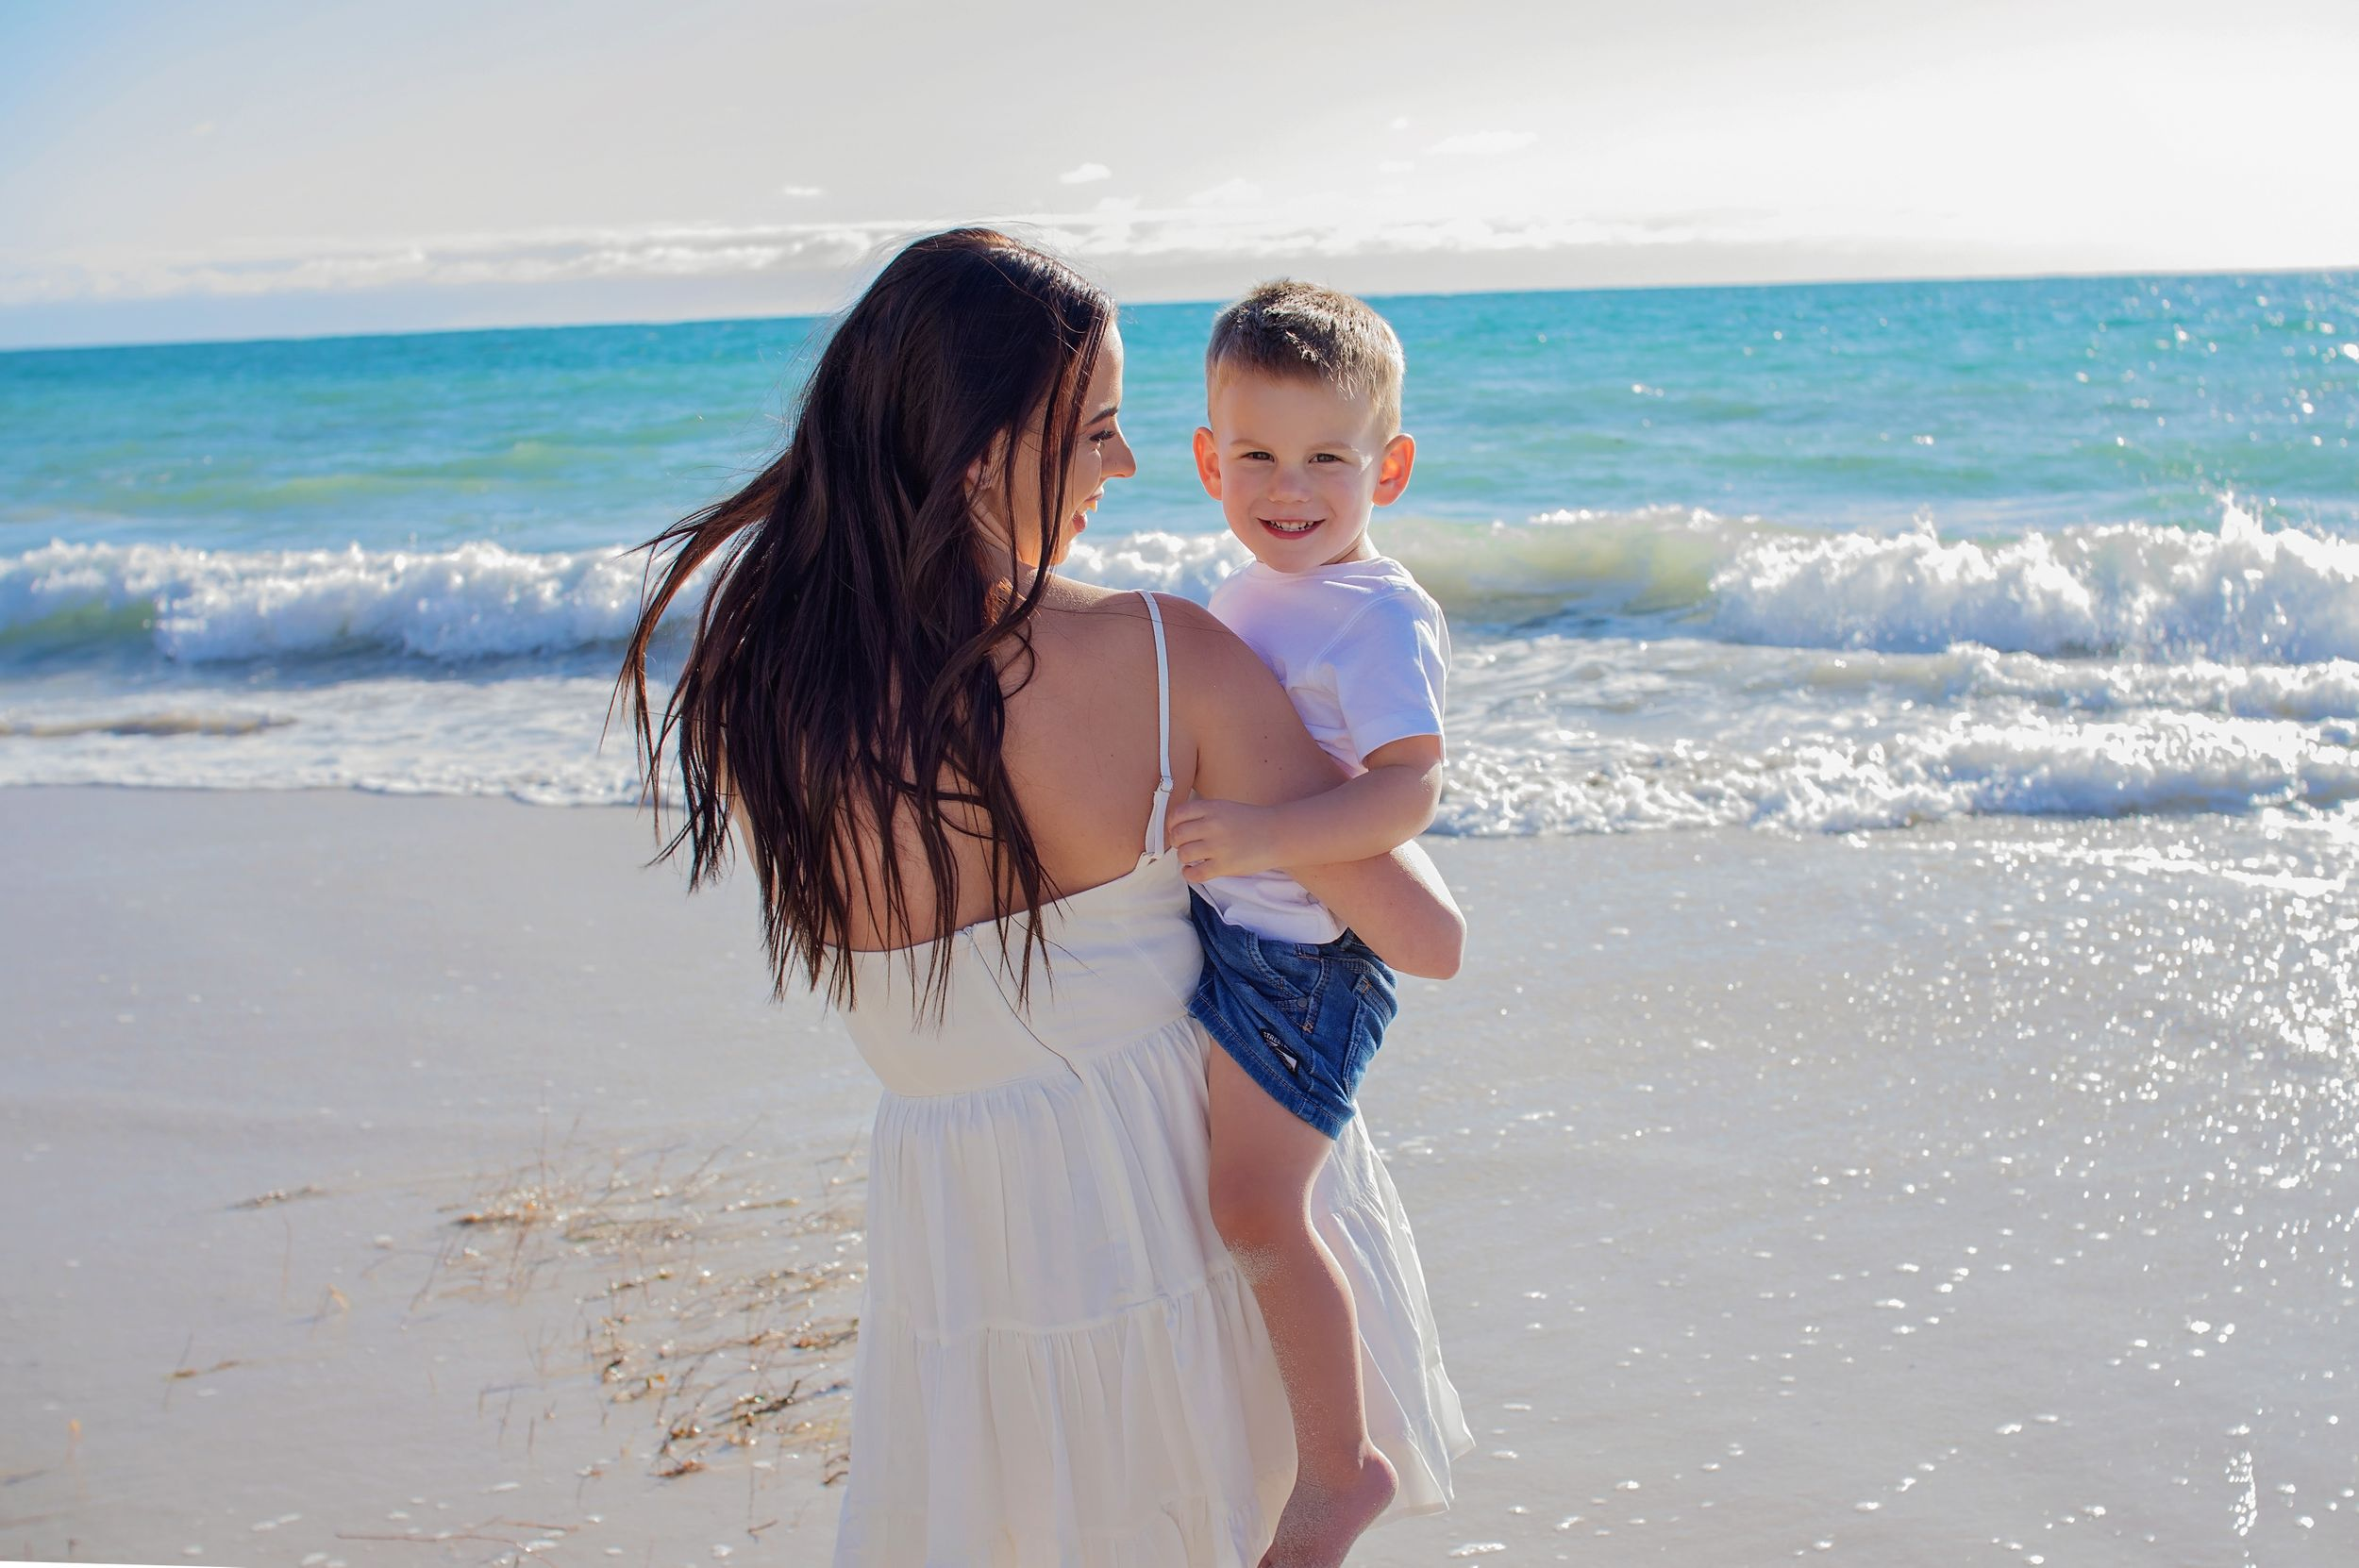 mother holding yougn son smiling on beach